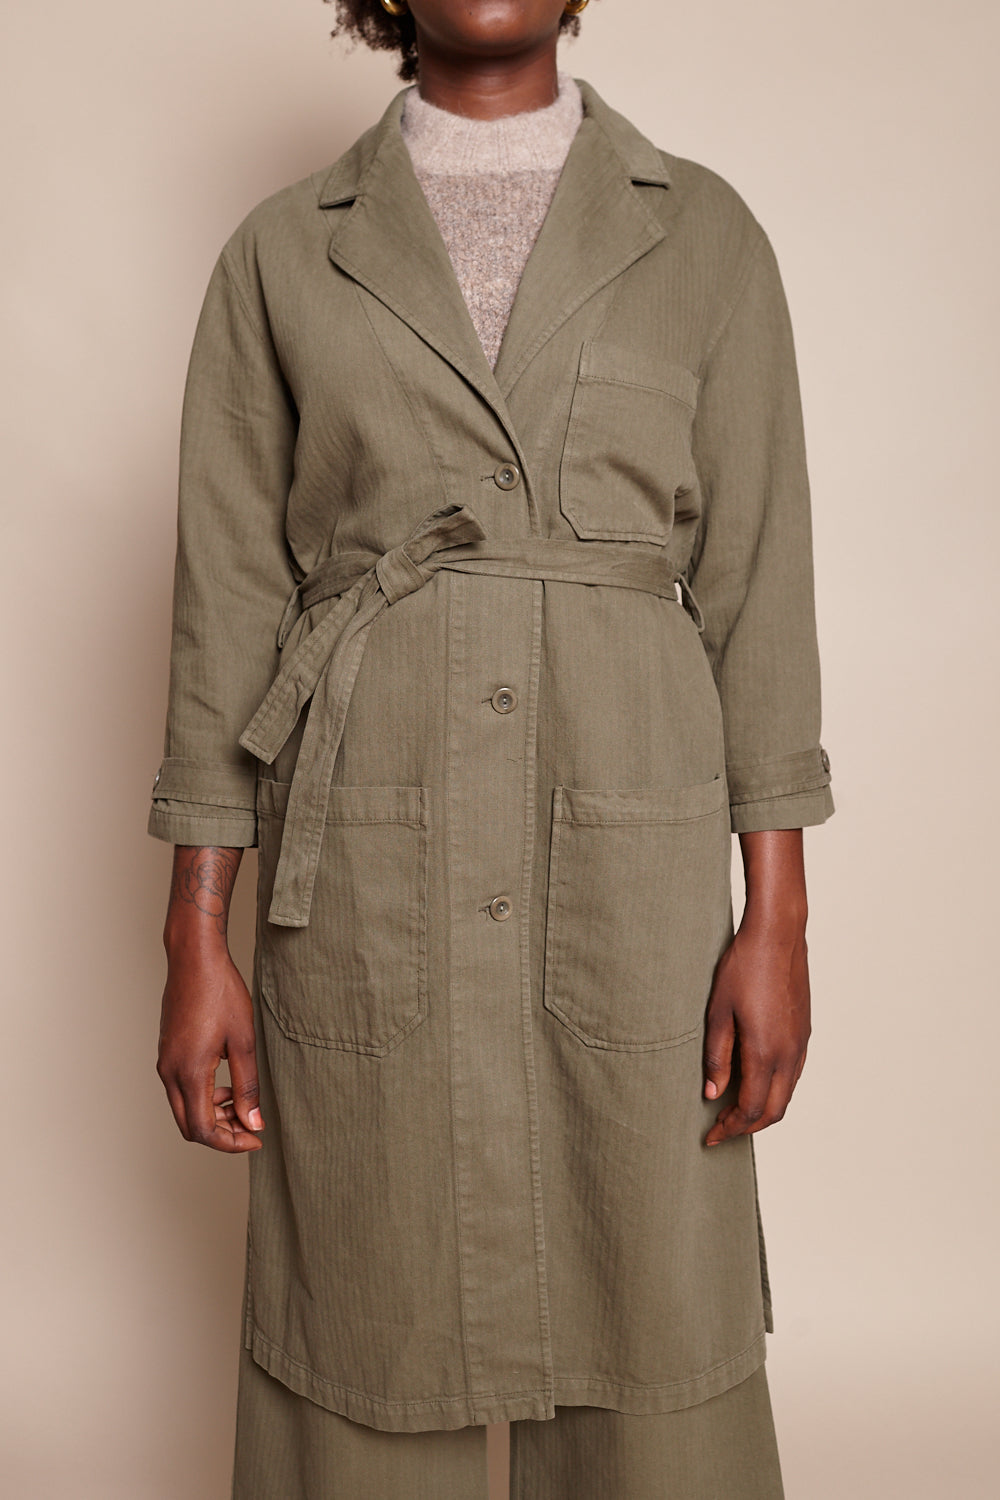 First Rite Shop Coat in Olive - Vert & Vogue